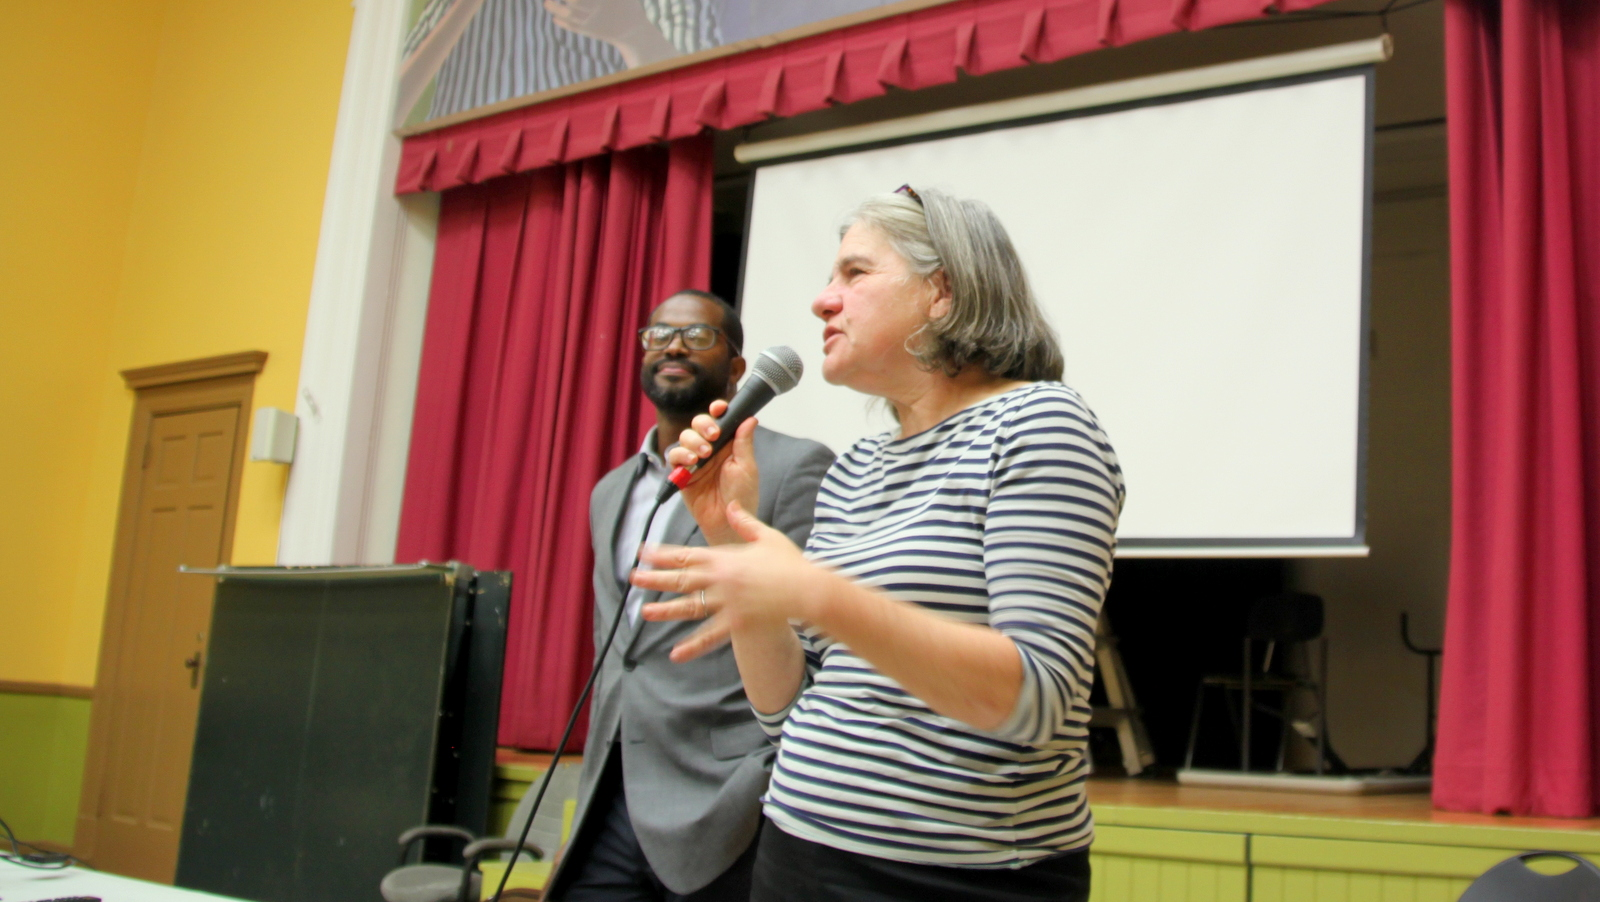 The Planning Department's Laurie Feinberg speaks about Transform, the city-wide rezoning process, as Nick Mosby listens. (Fern Shen)